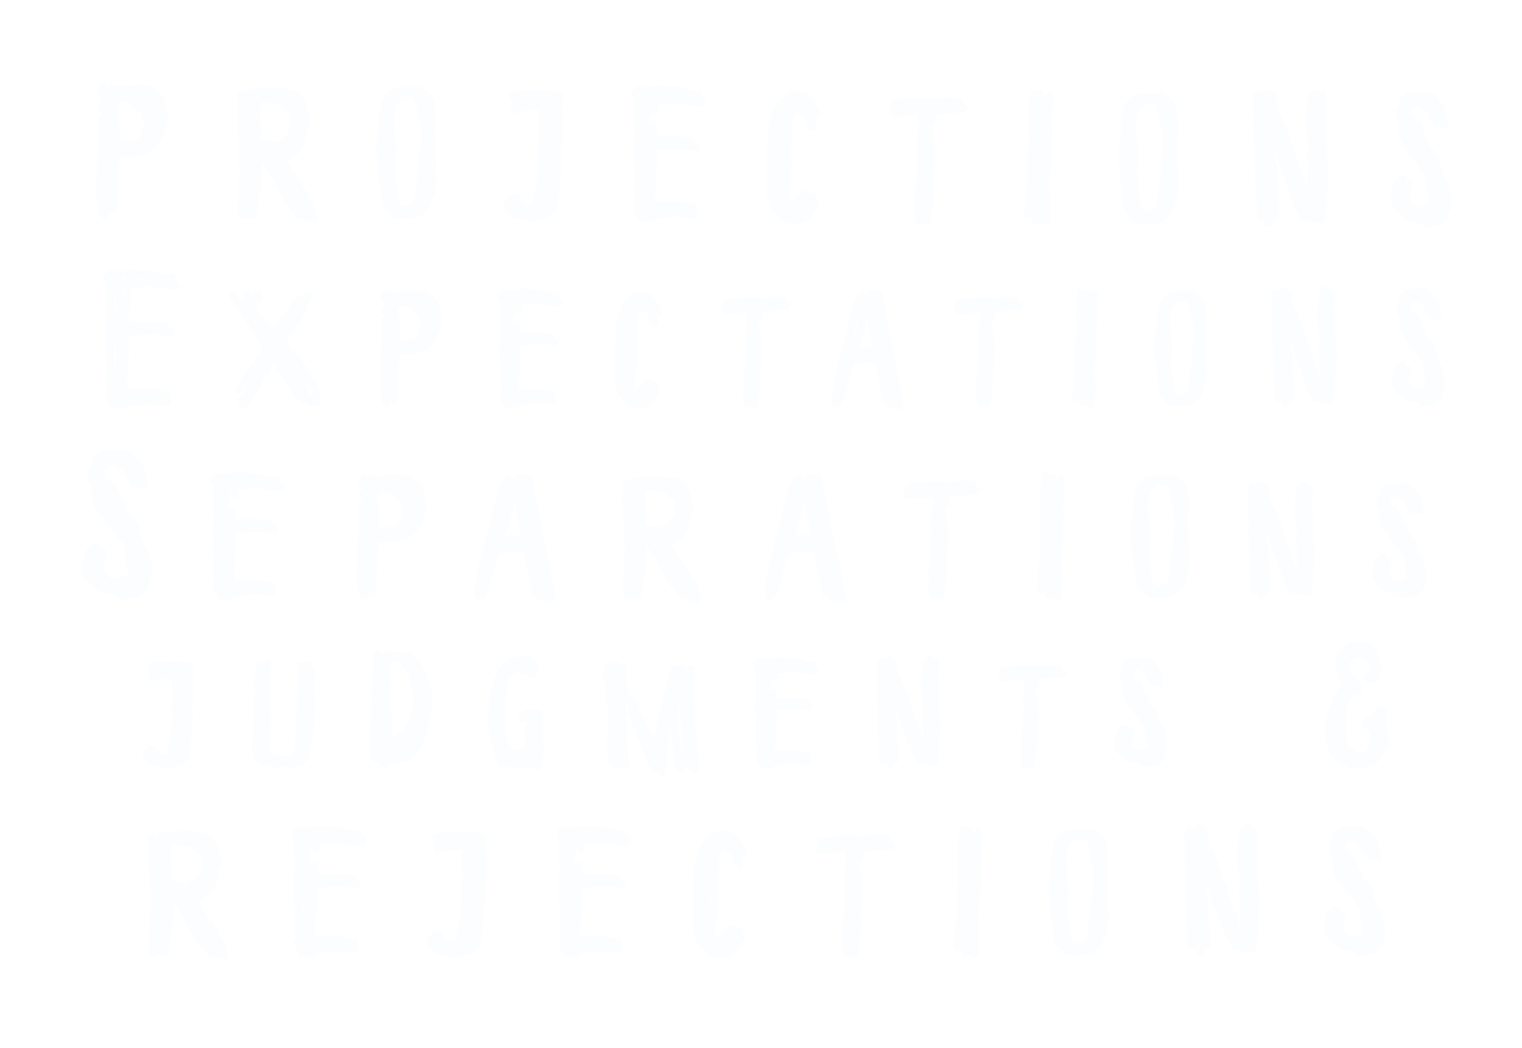 Projections, Expectations, Separations, Judgments  Rejections